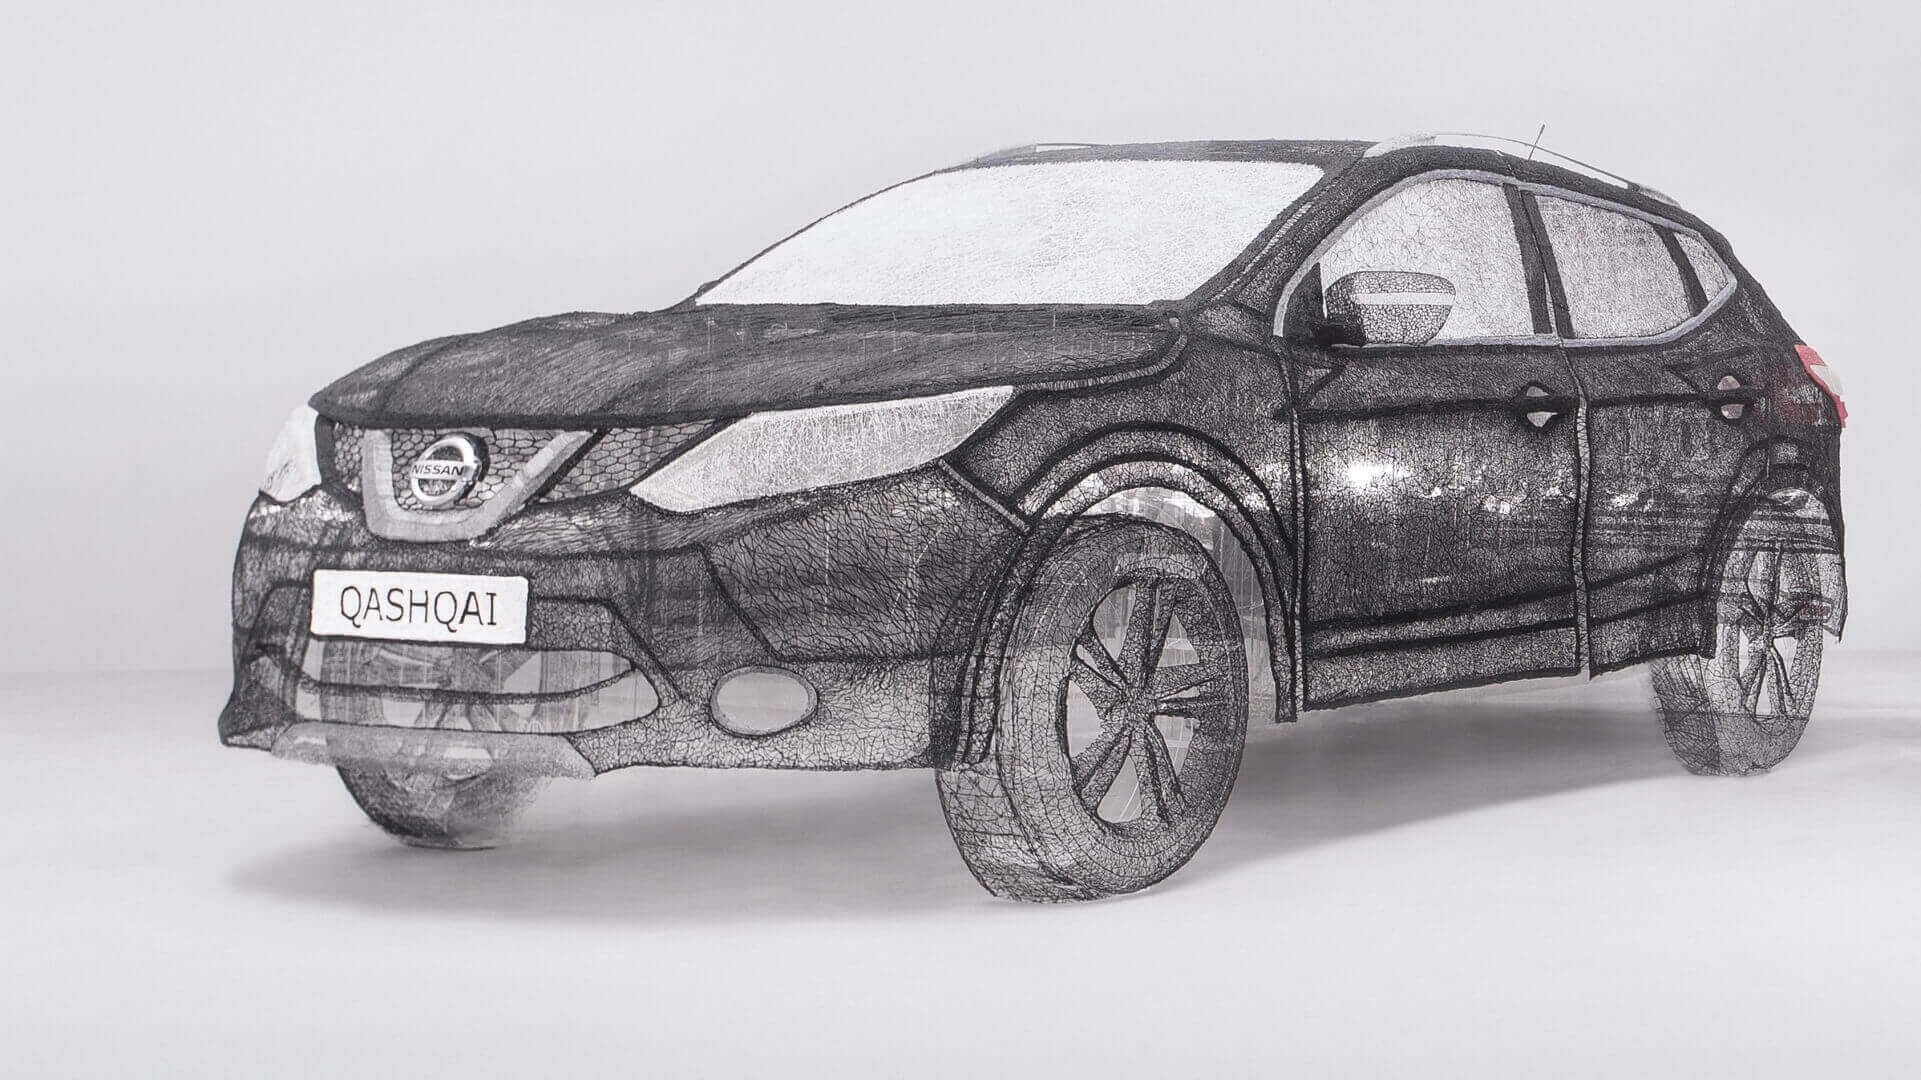 Nissan Qashqai is World's Largest 3D Pen Sculpture | All3DP